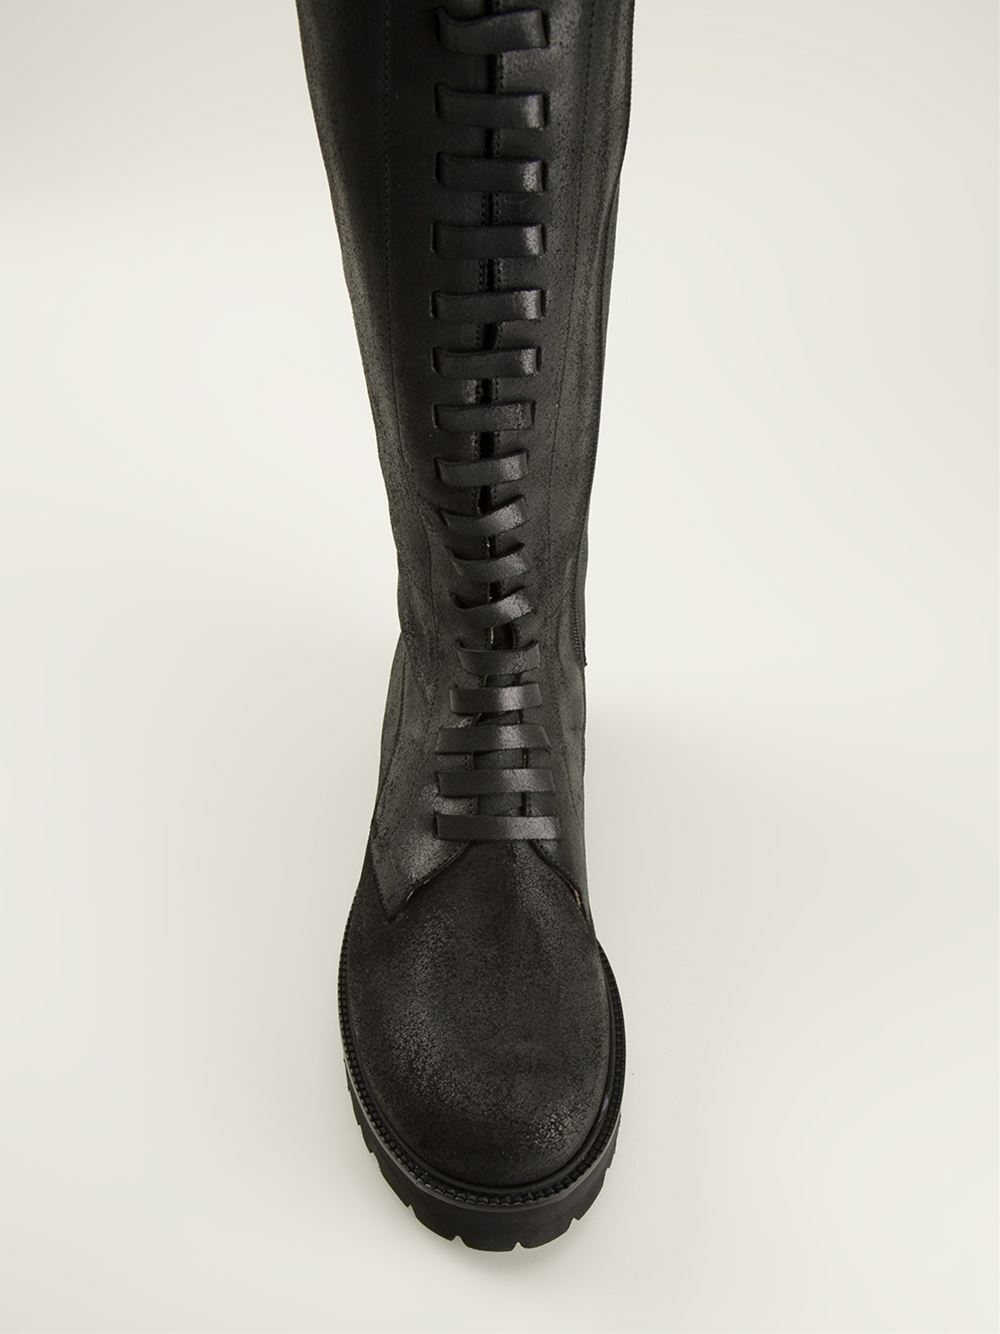 MM6 by Maison Martin Margiela Lace-Up Boots in Black